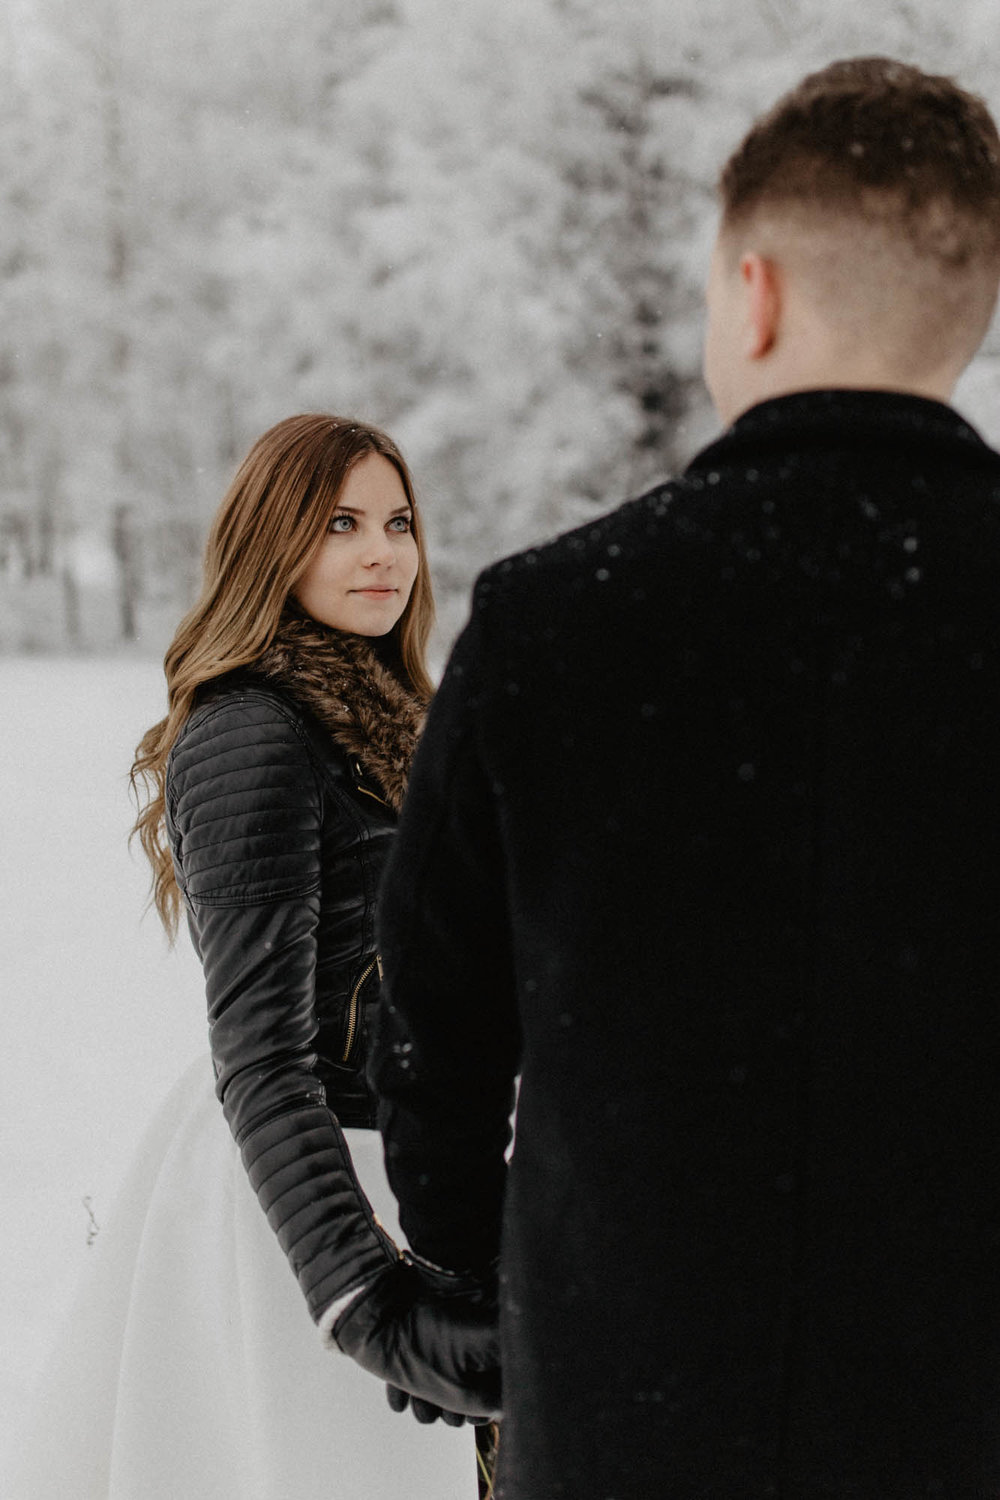 ashley_schulman_photography-winter_wedding_tampere-5.jpg